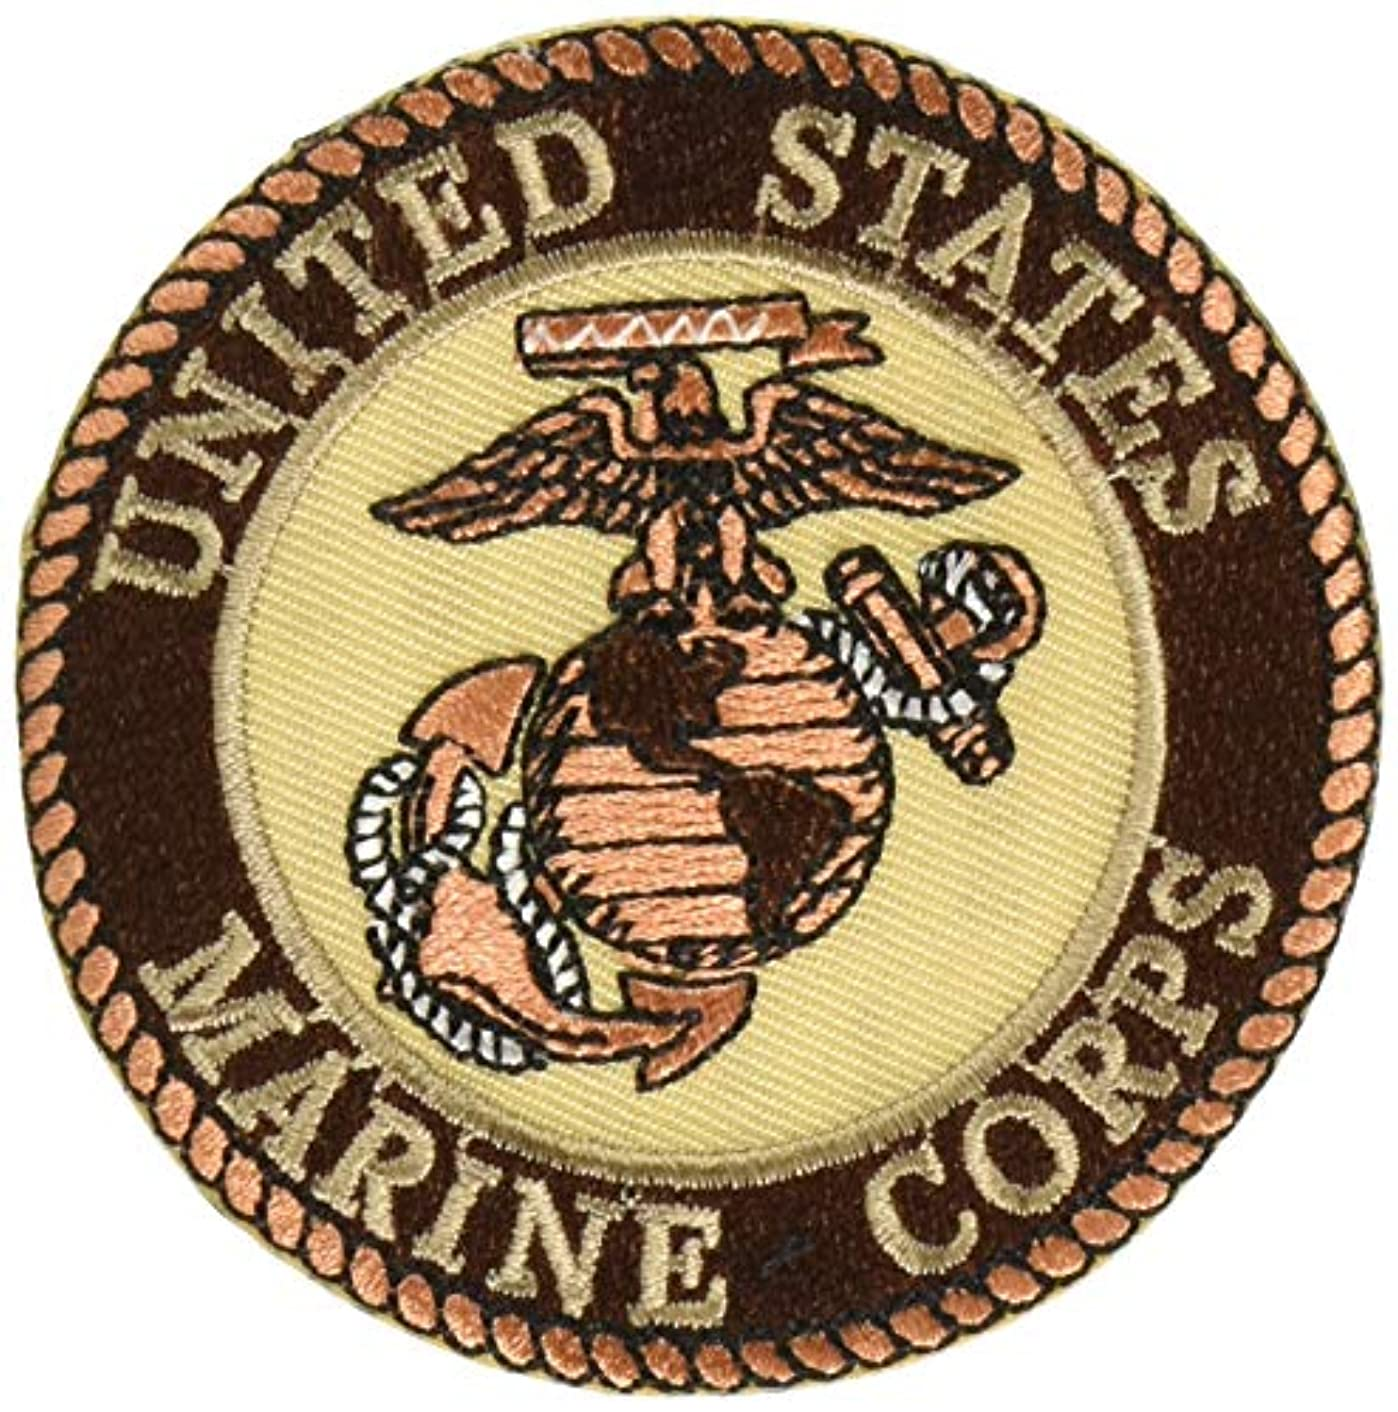 EagleEmblems PM0893 Patch-USMC Logo (03D) (Desert) (3'')